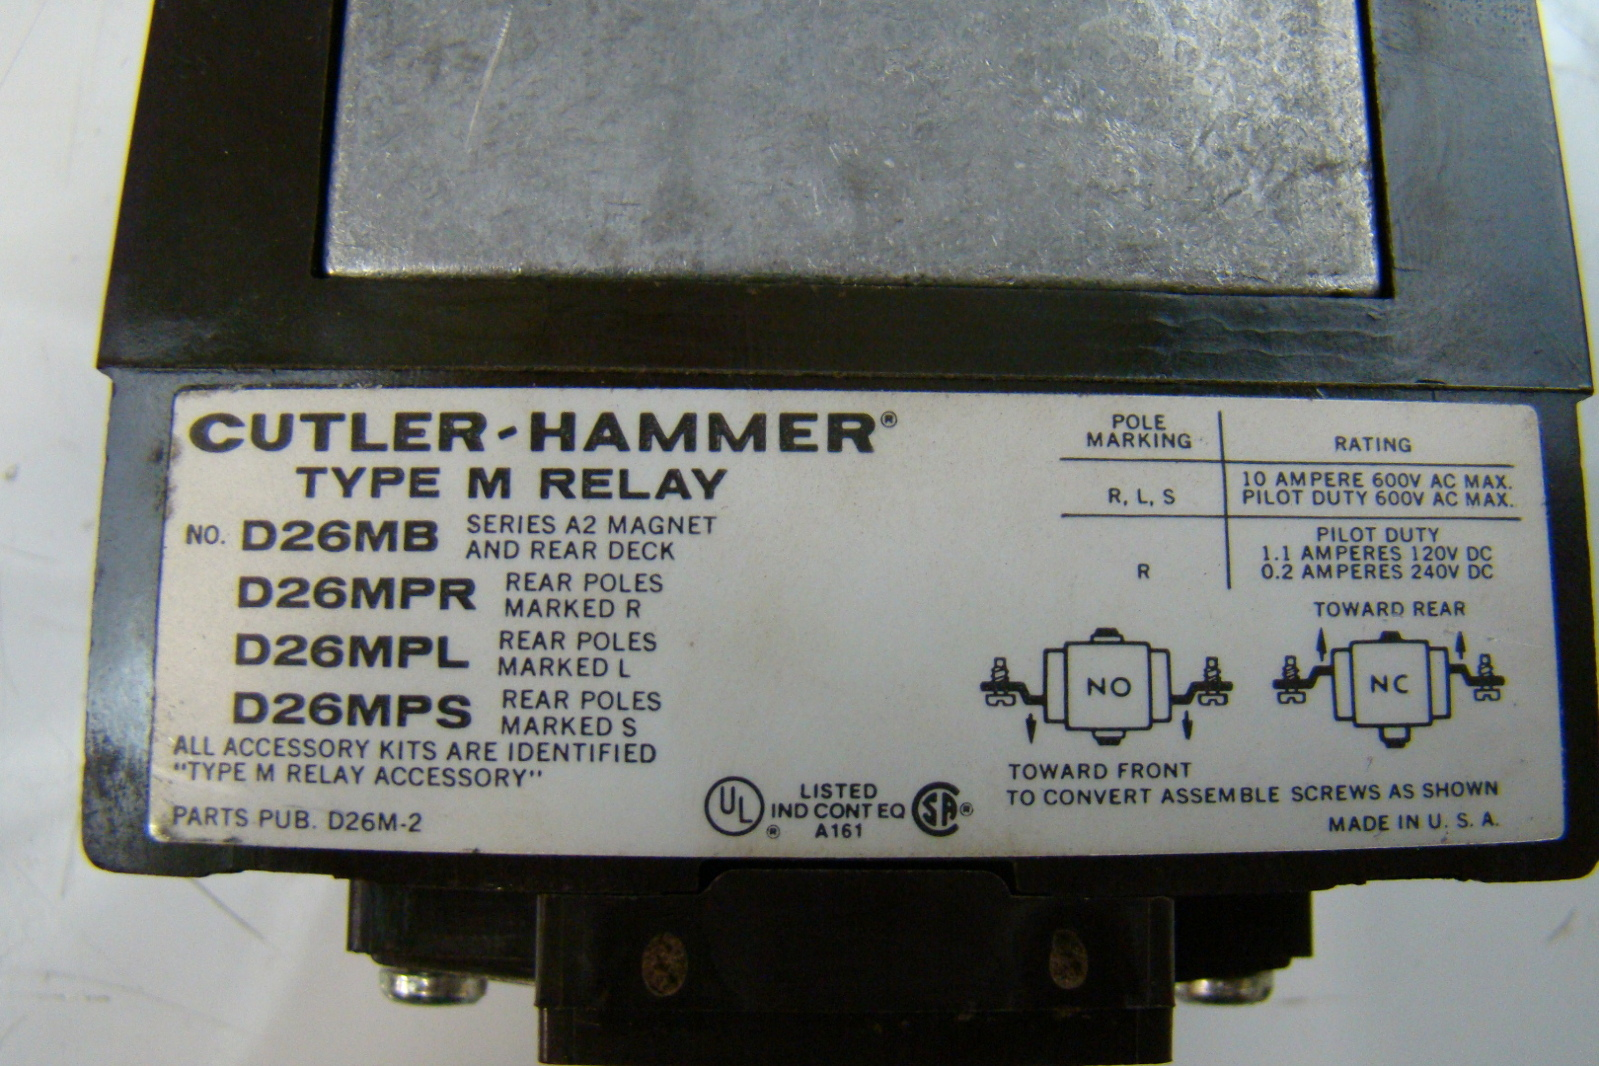 jf03011 cutler hammer 600v type m relay d26mb 9 cutler hammer 600v type m relay d26mb ebay on cutler hammer type m relay wiring diagram